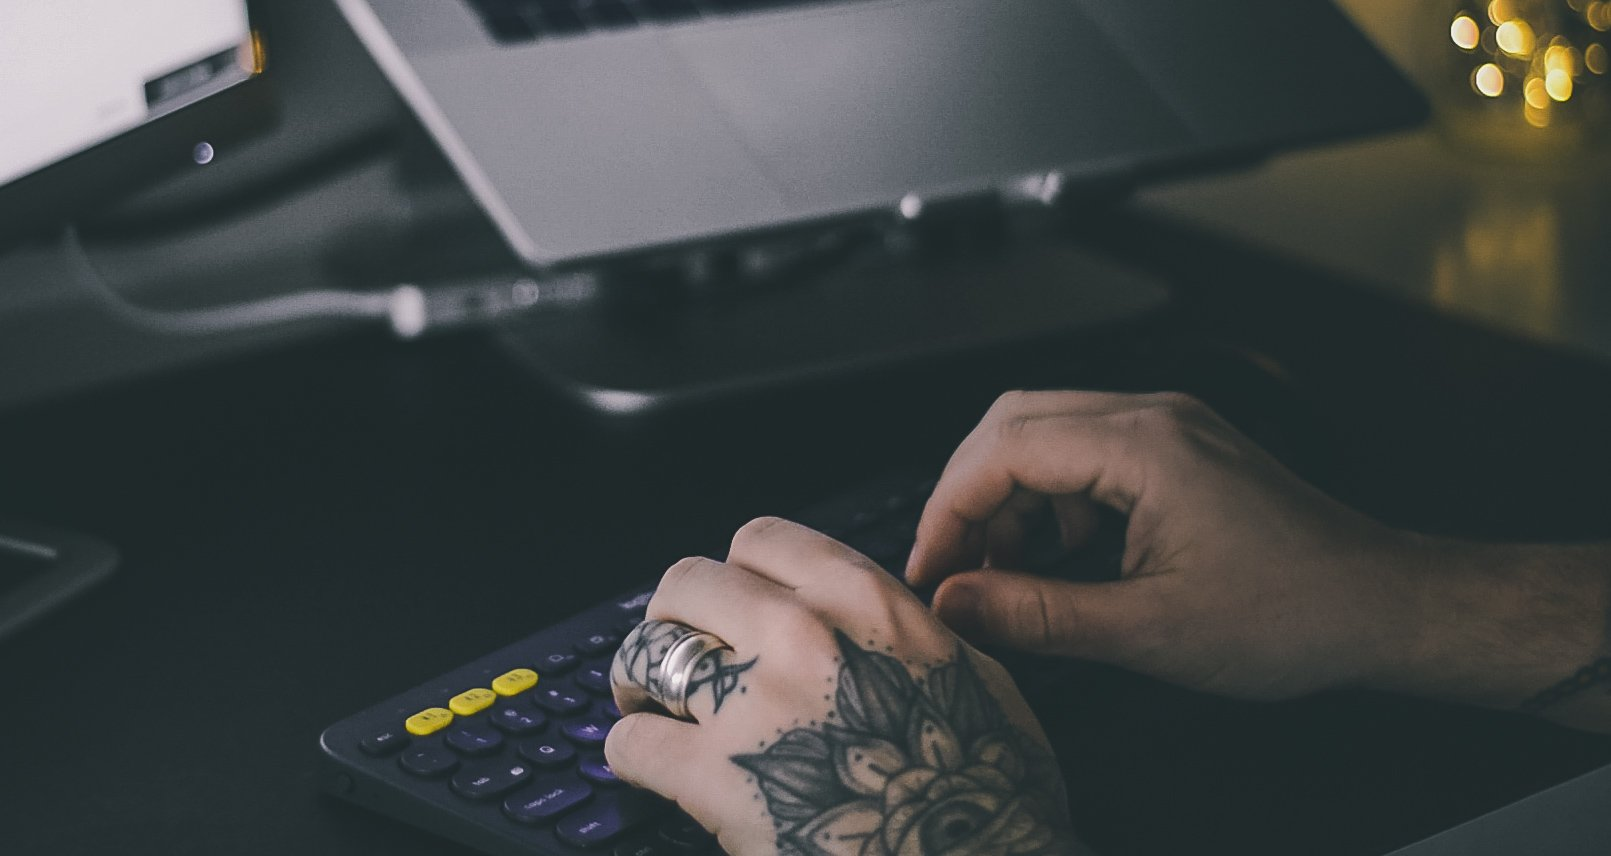 tattooed-hands-typing-on-office-keyboard